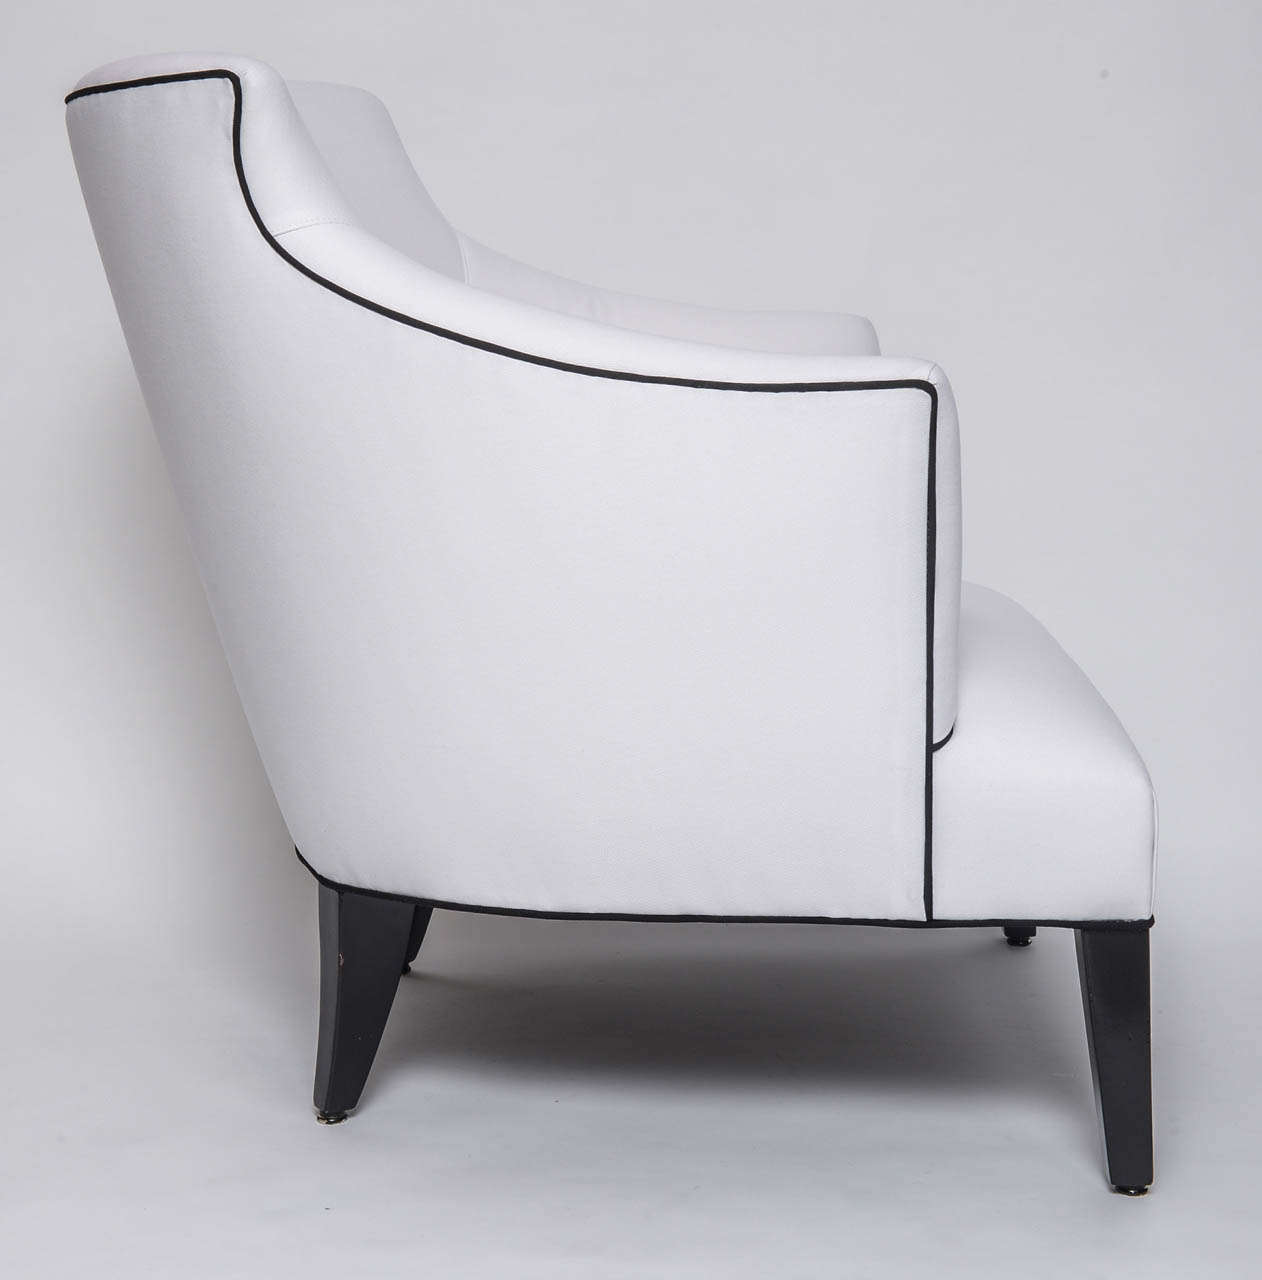 Contemporary Studio Built Chair Designed by Susane R, 1940s Inspired Called